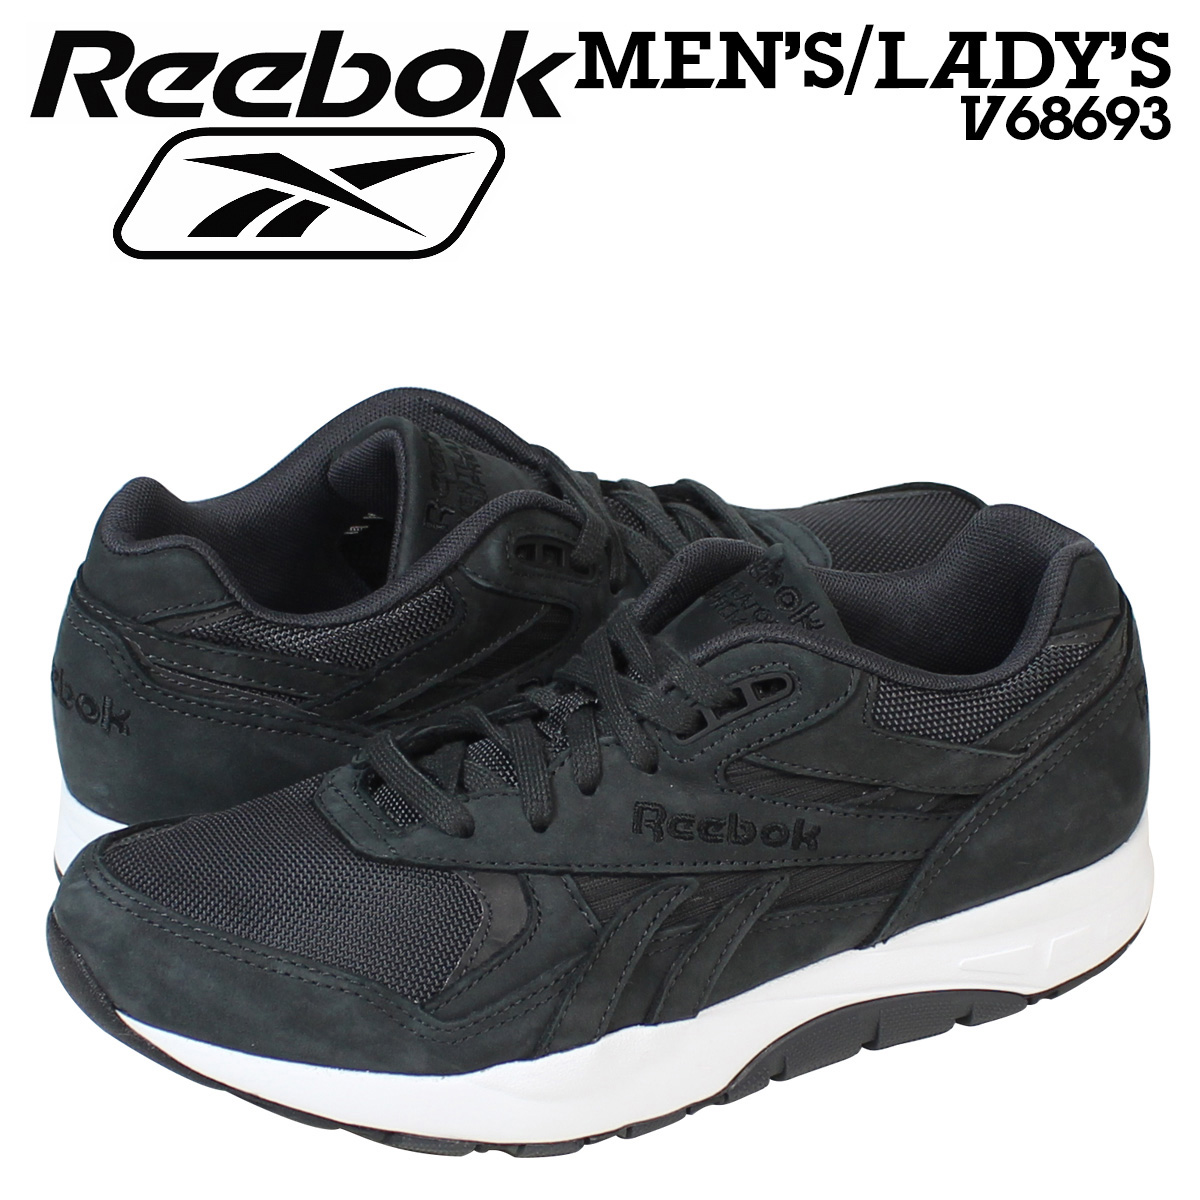 cf2eae8604c Sugar Online Shop  Reebok Reebok ventilator Supreme sneaker VENTILATOR  SUPREME V68693 men s women s shoes black